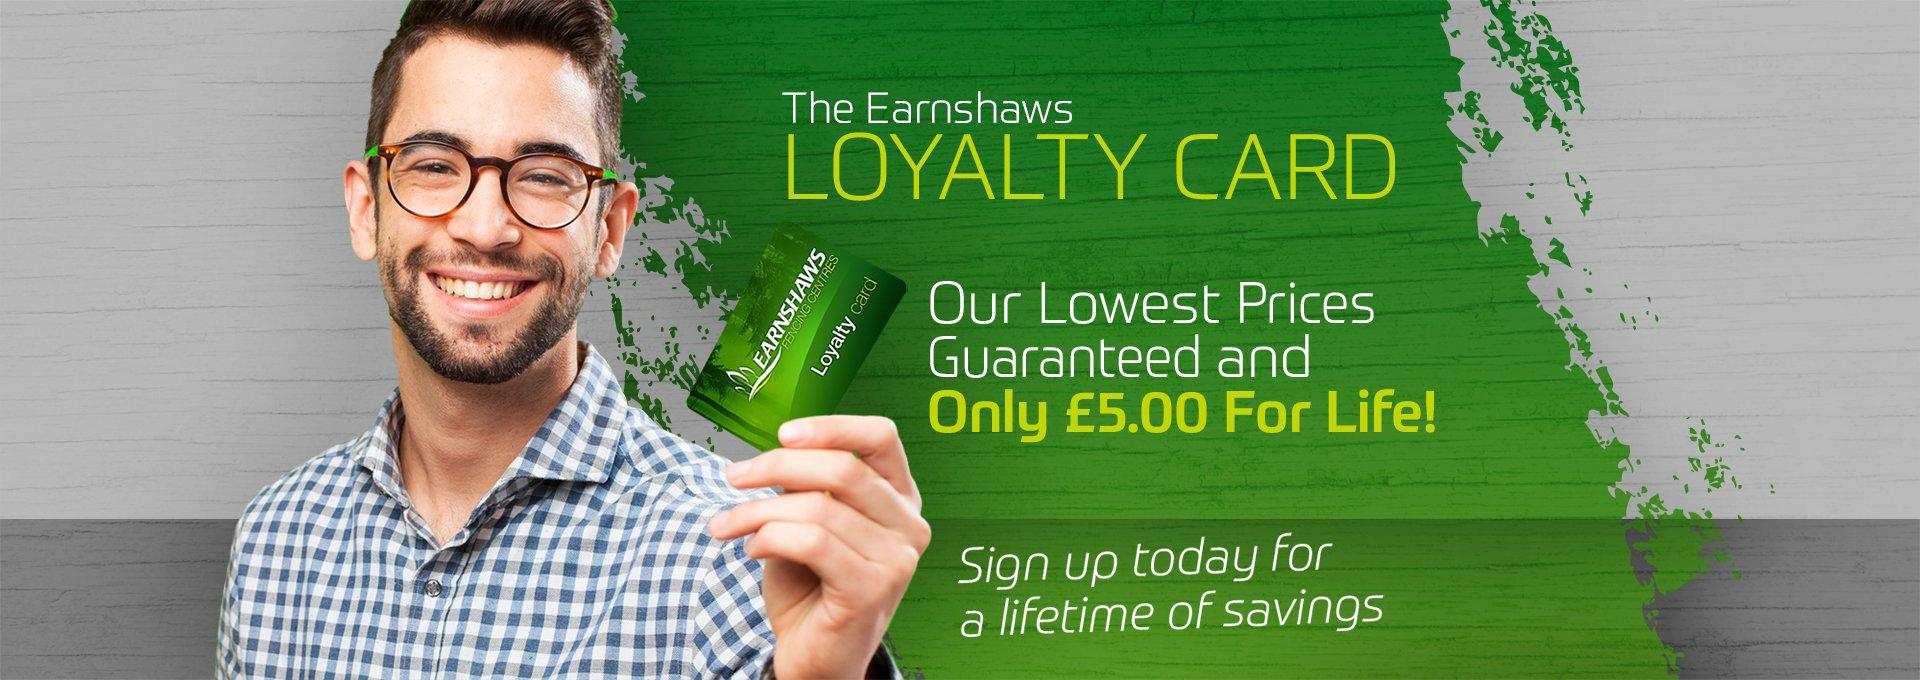 Earnshaws Loyalty Card for Lifetime Savings